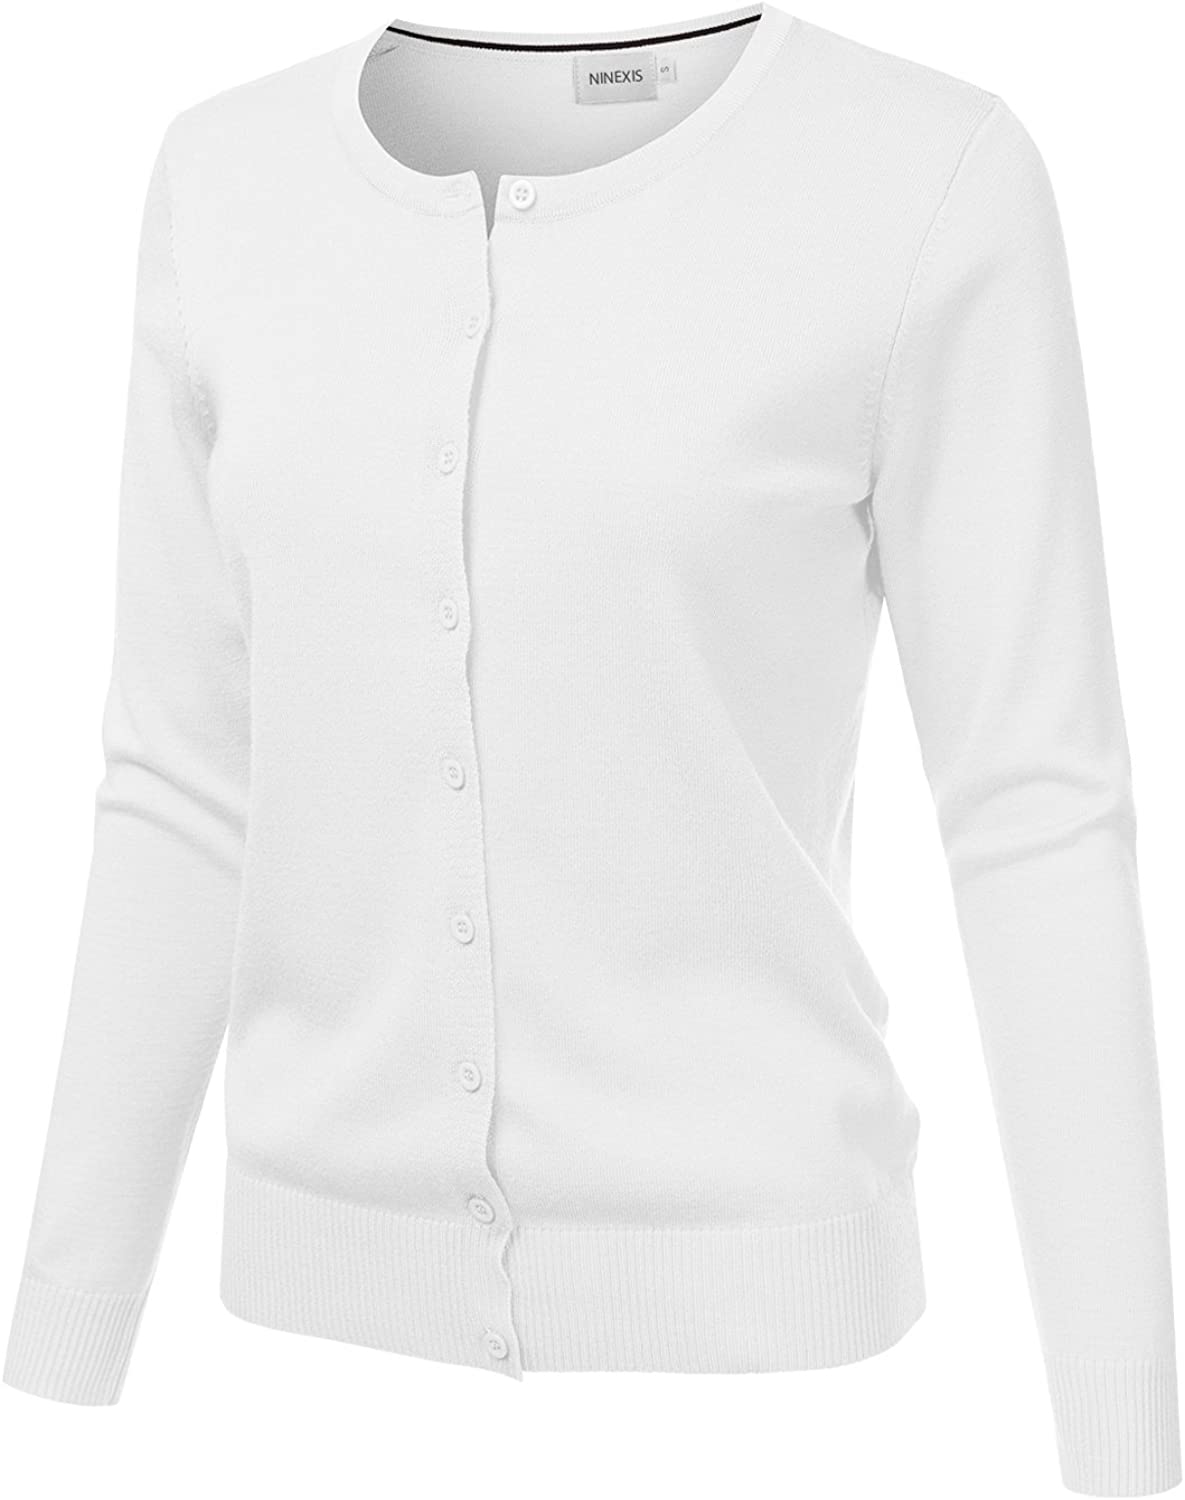 JJ Perfection Women's Button Down Soft Knit Long Sleeve Cardigan Sweater